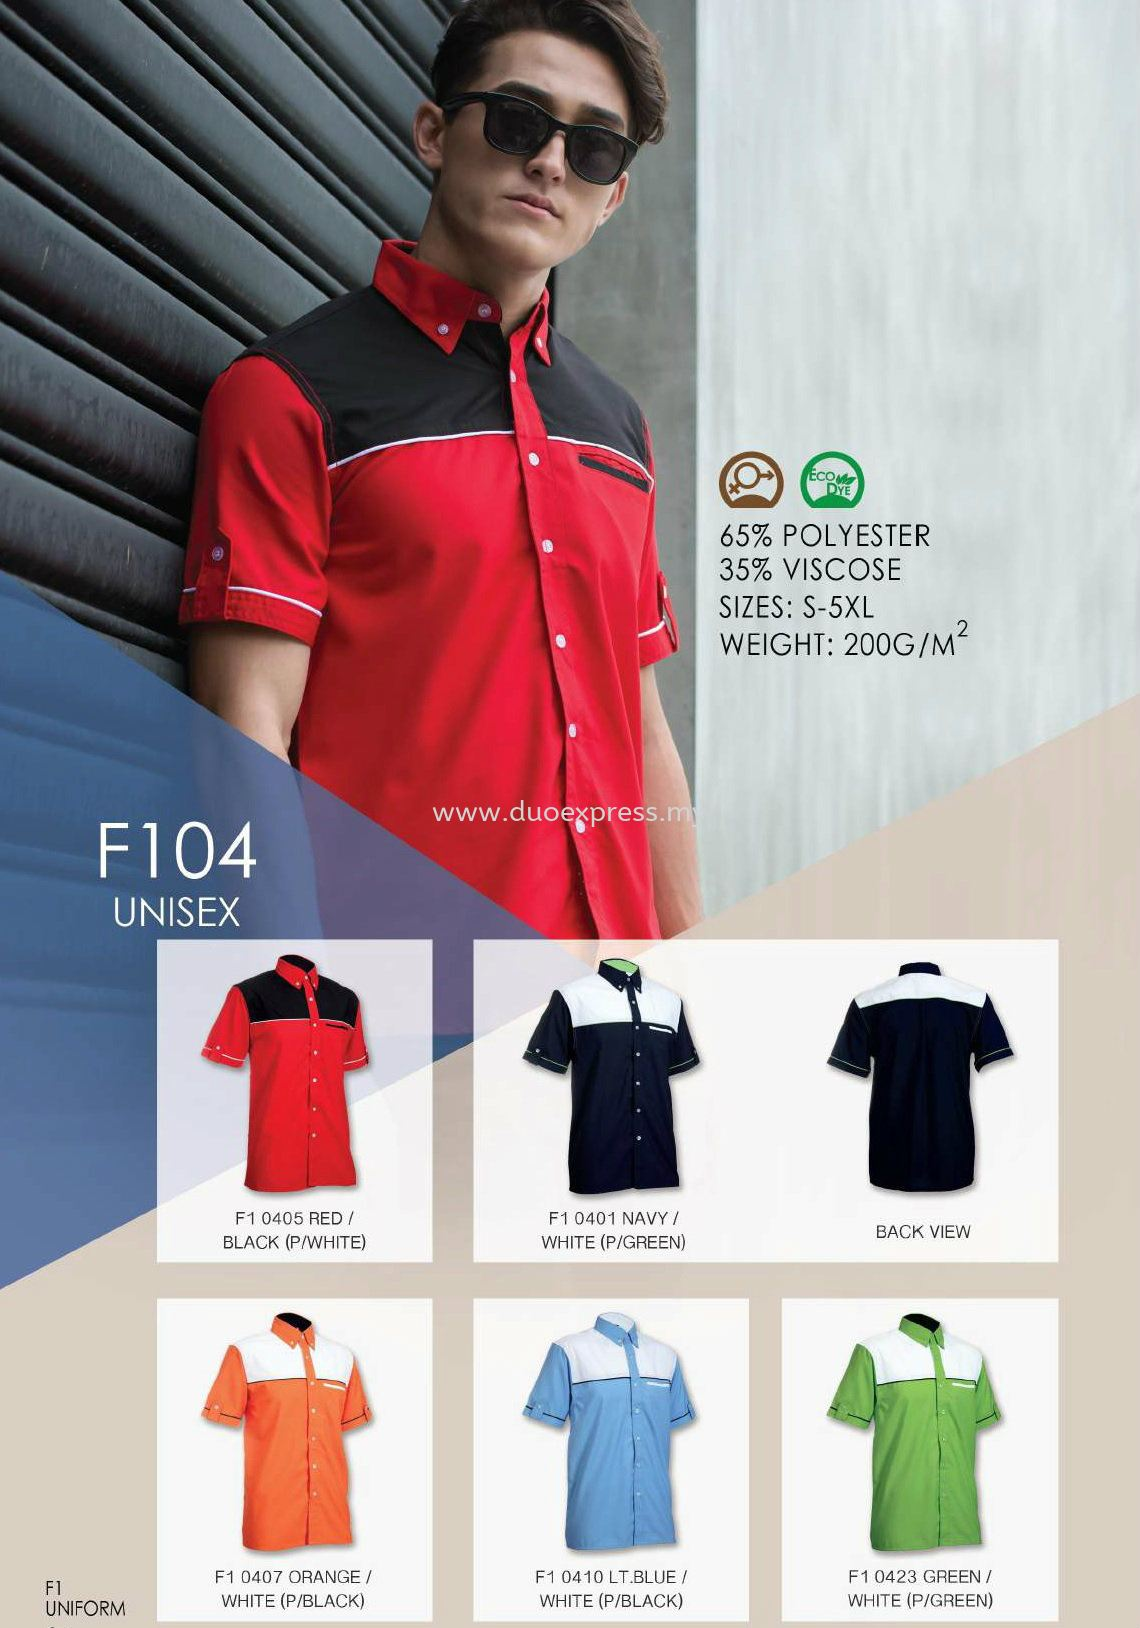 Corporate F1 Shirt- Unisex- Ready Made F-104